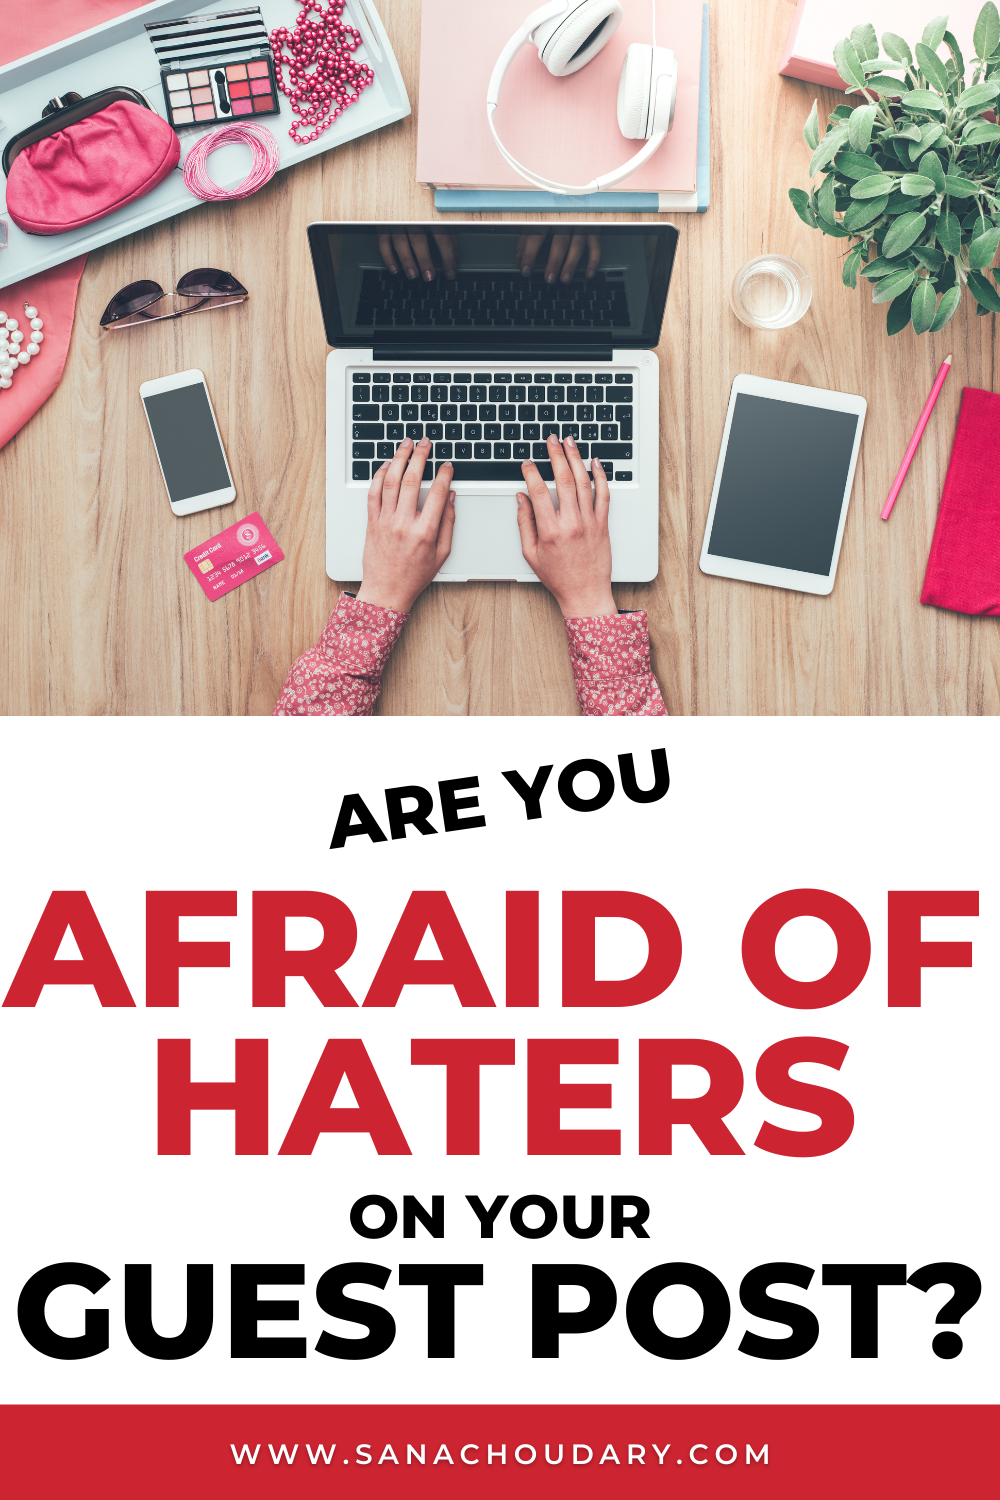 Are You Afraid of Haters On Your Guest Post?